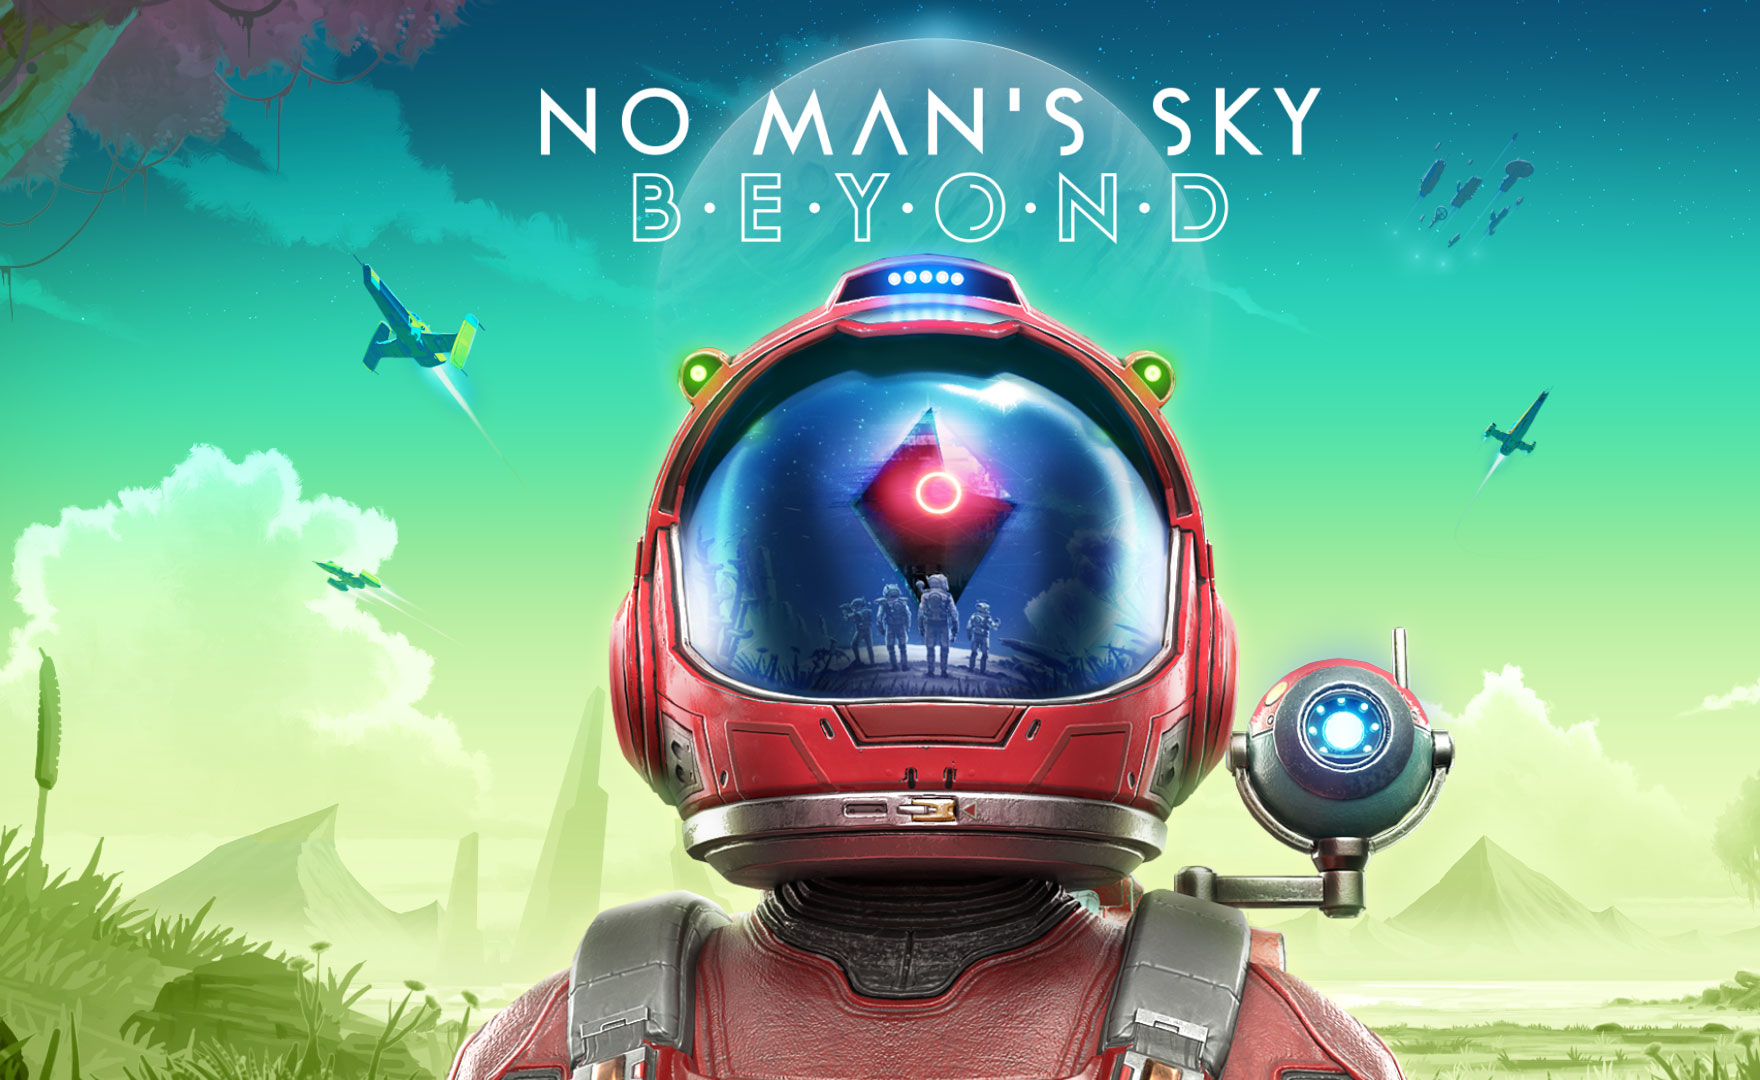 No Man's Sky Beyond, annunciata la data di uscita con un trailer